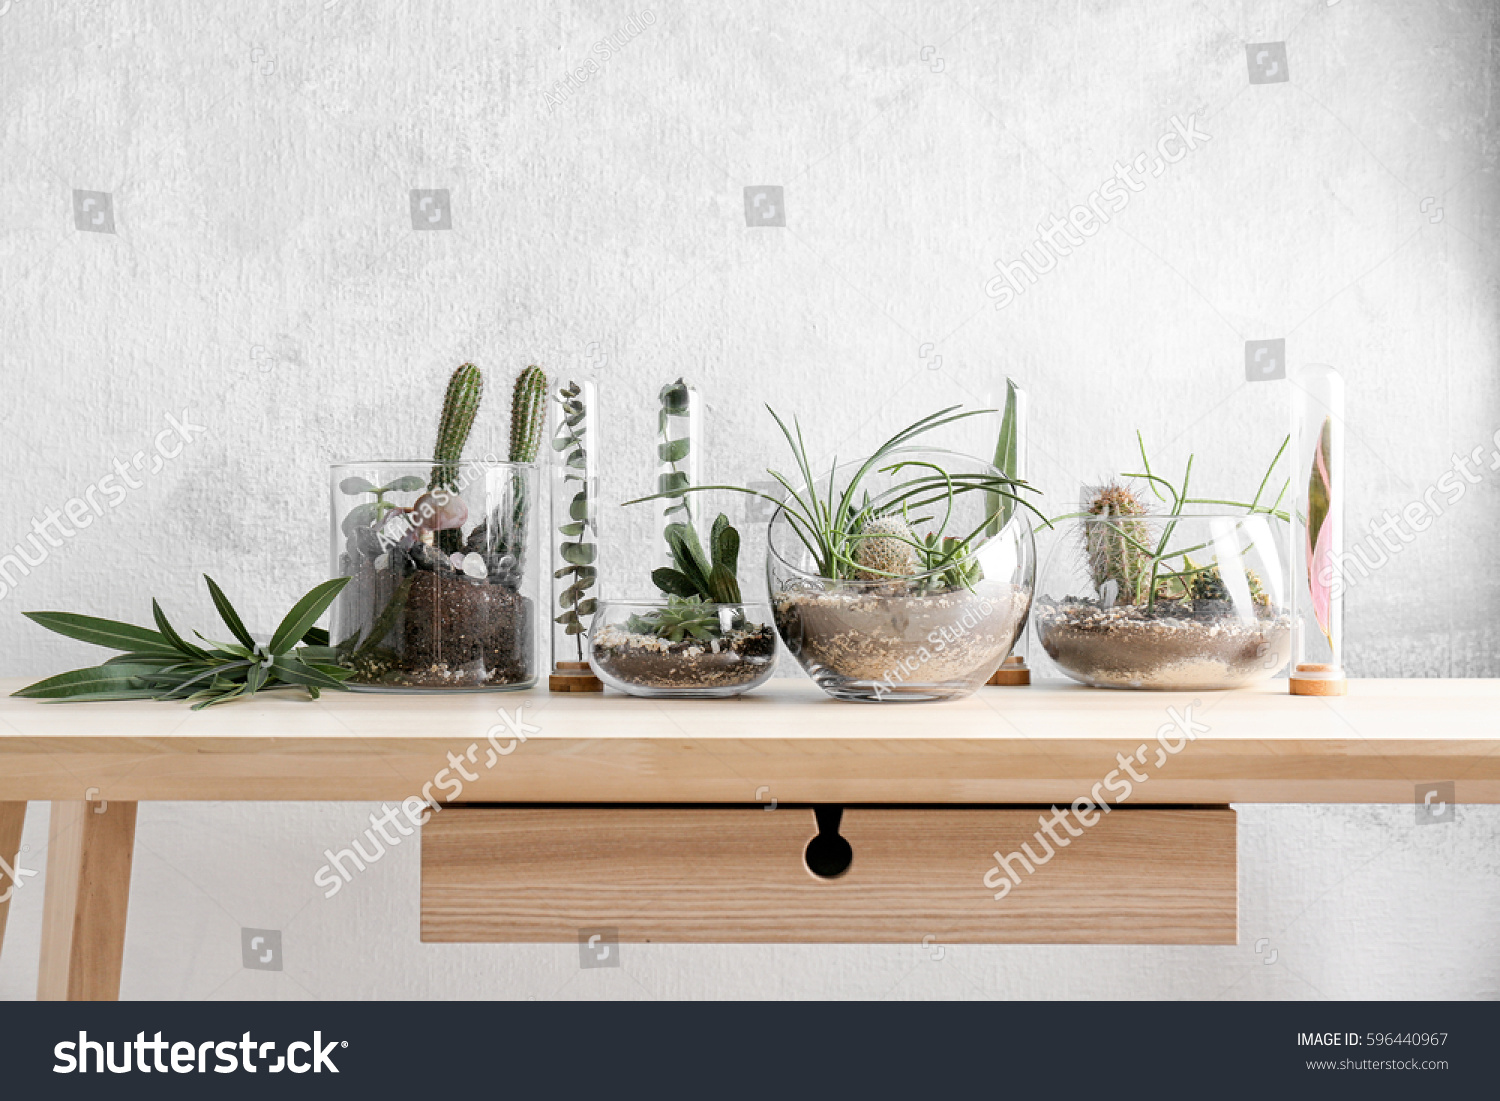 Florarium Glass Vases Succulents On Wooden Stock Photo ...